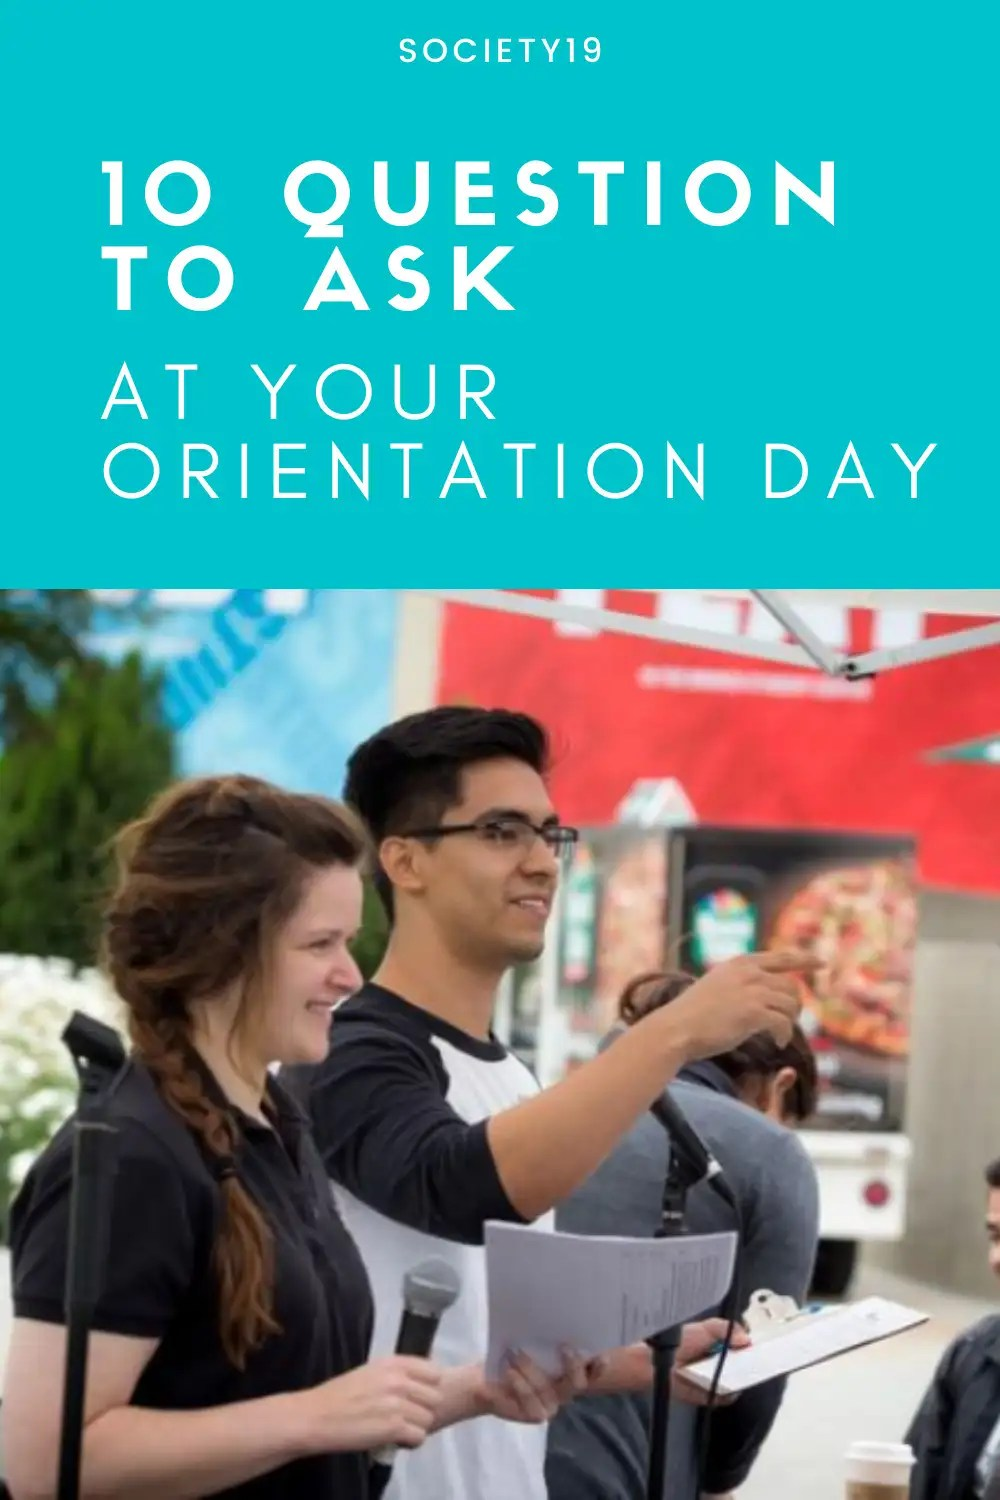 Orientation Day, 10 Question To Ask At Your Orientation Day